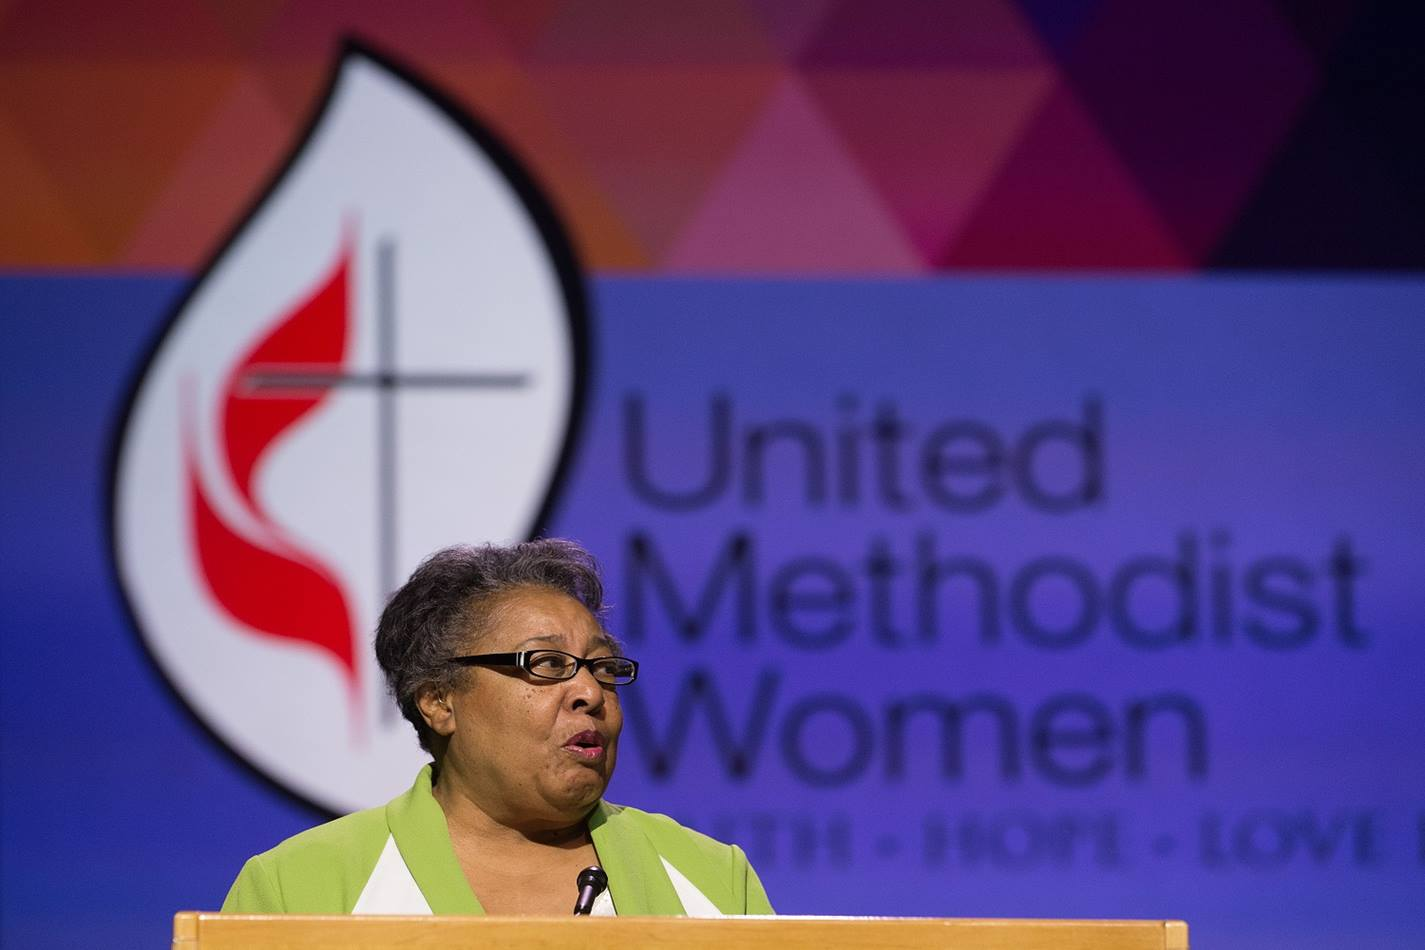 Clara Ester of the Alabama-West Florida Conference addresses the 2016 United Methodist General Conference in Portland, Ore. Photo by Mike DuBose, UMNS